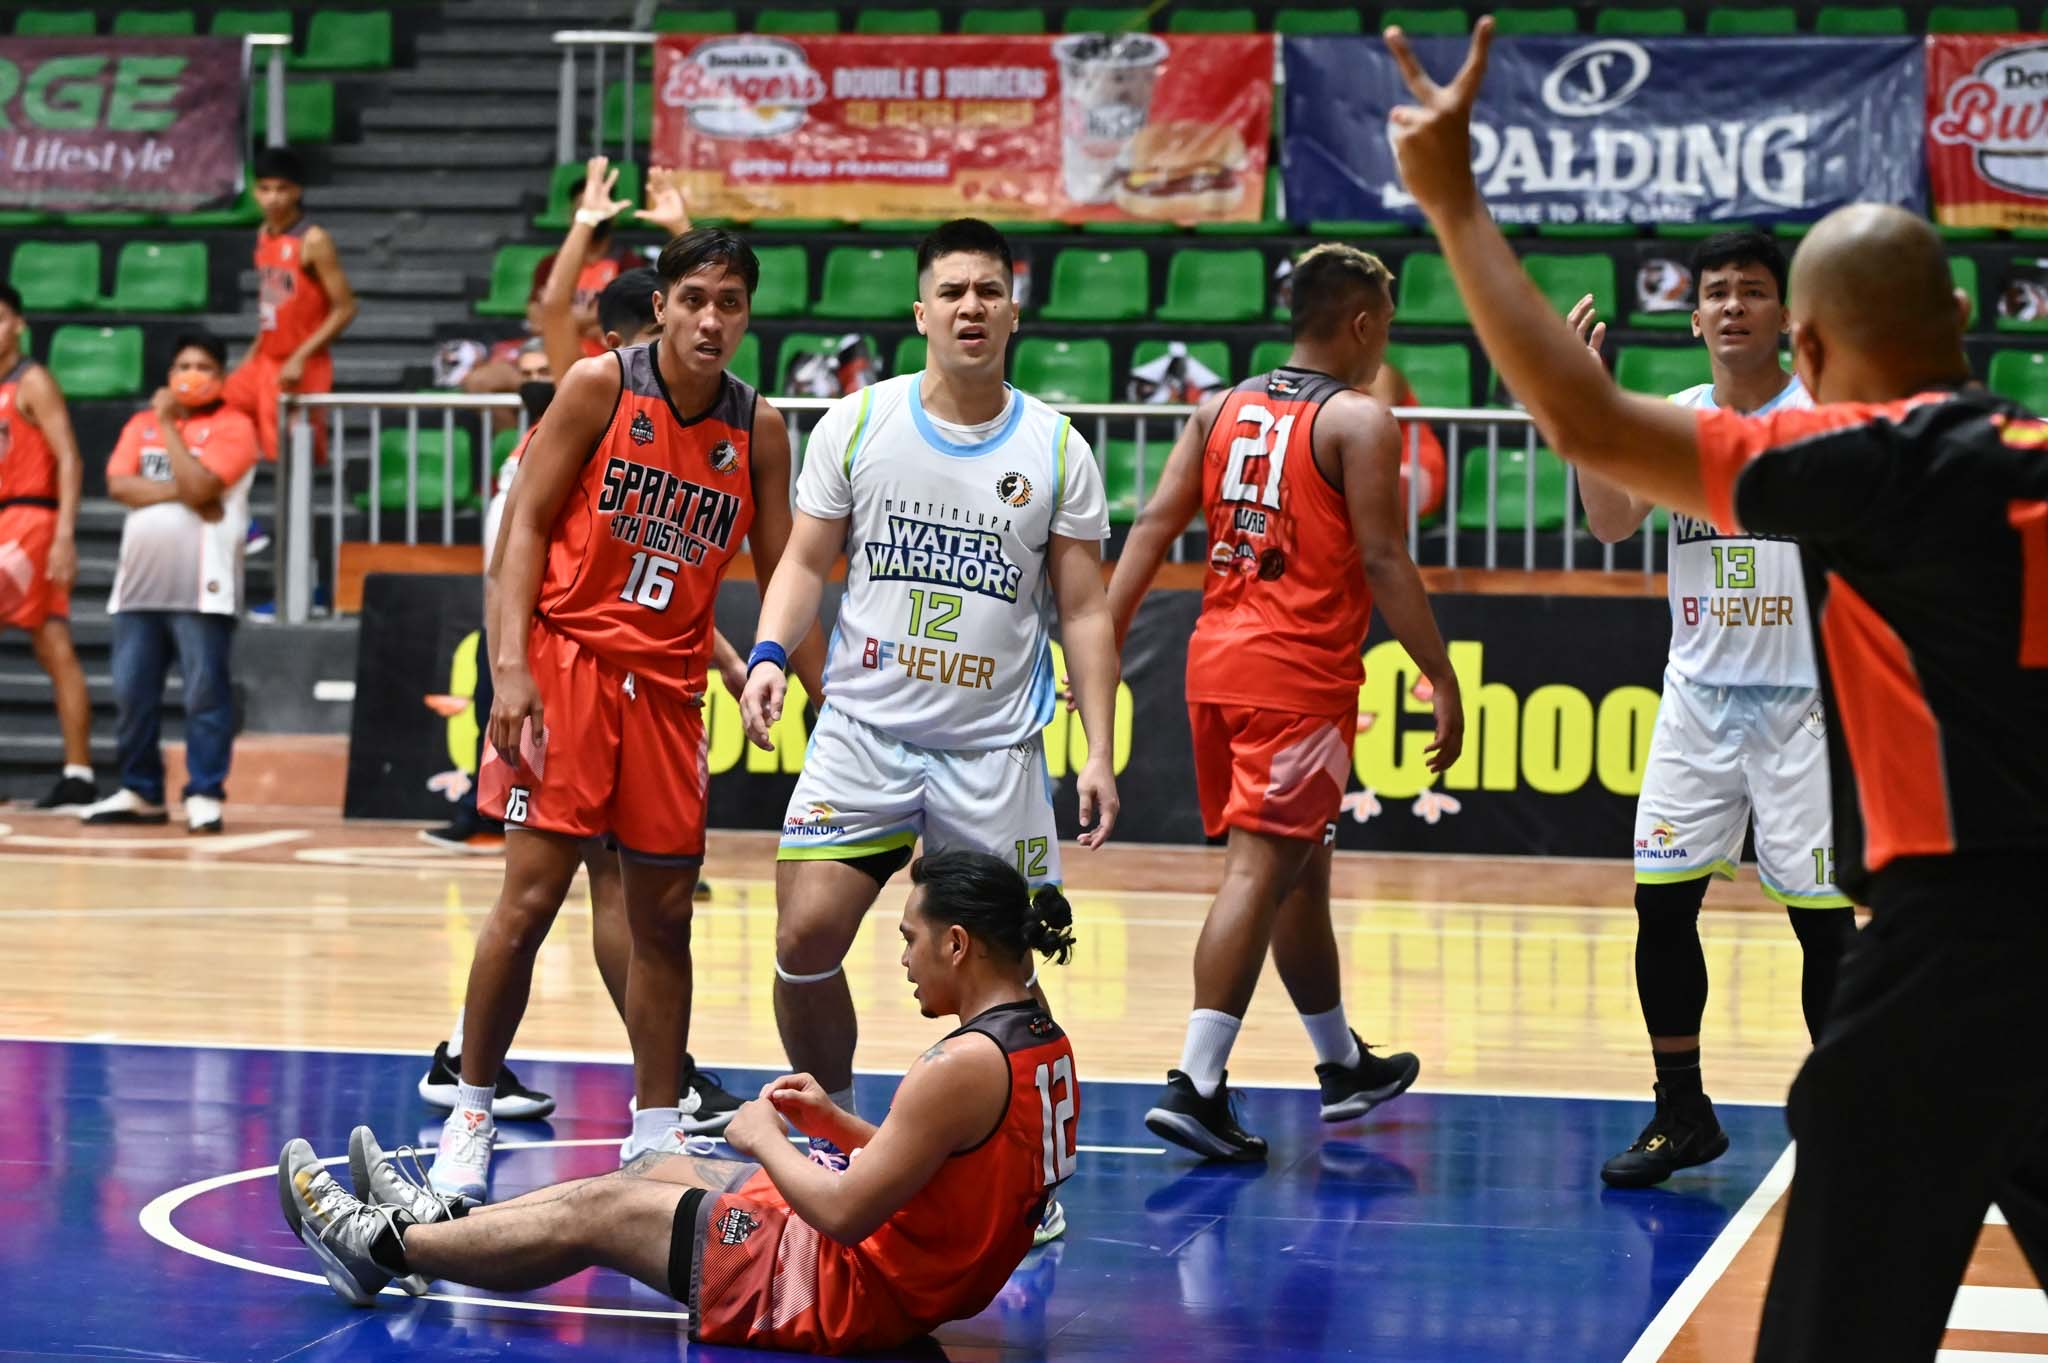 2021-Chooks-to-Go-NBL-Muntinlupa-vs-Quezon-D4-Andretti-Stevens Enguio, Mendoza stamp class, lead Muntinlupa to rousing NBL debut Basketball NBL News  - philippine sports news